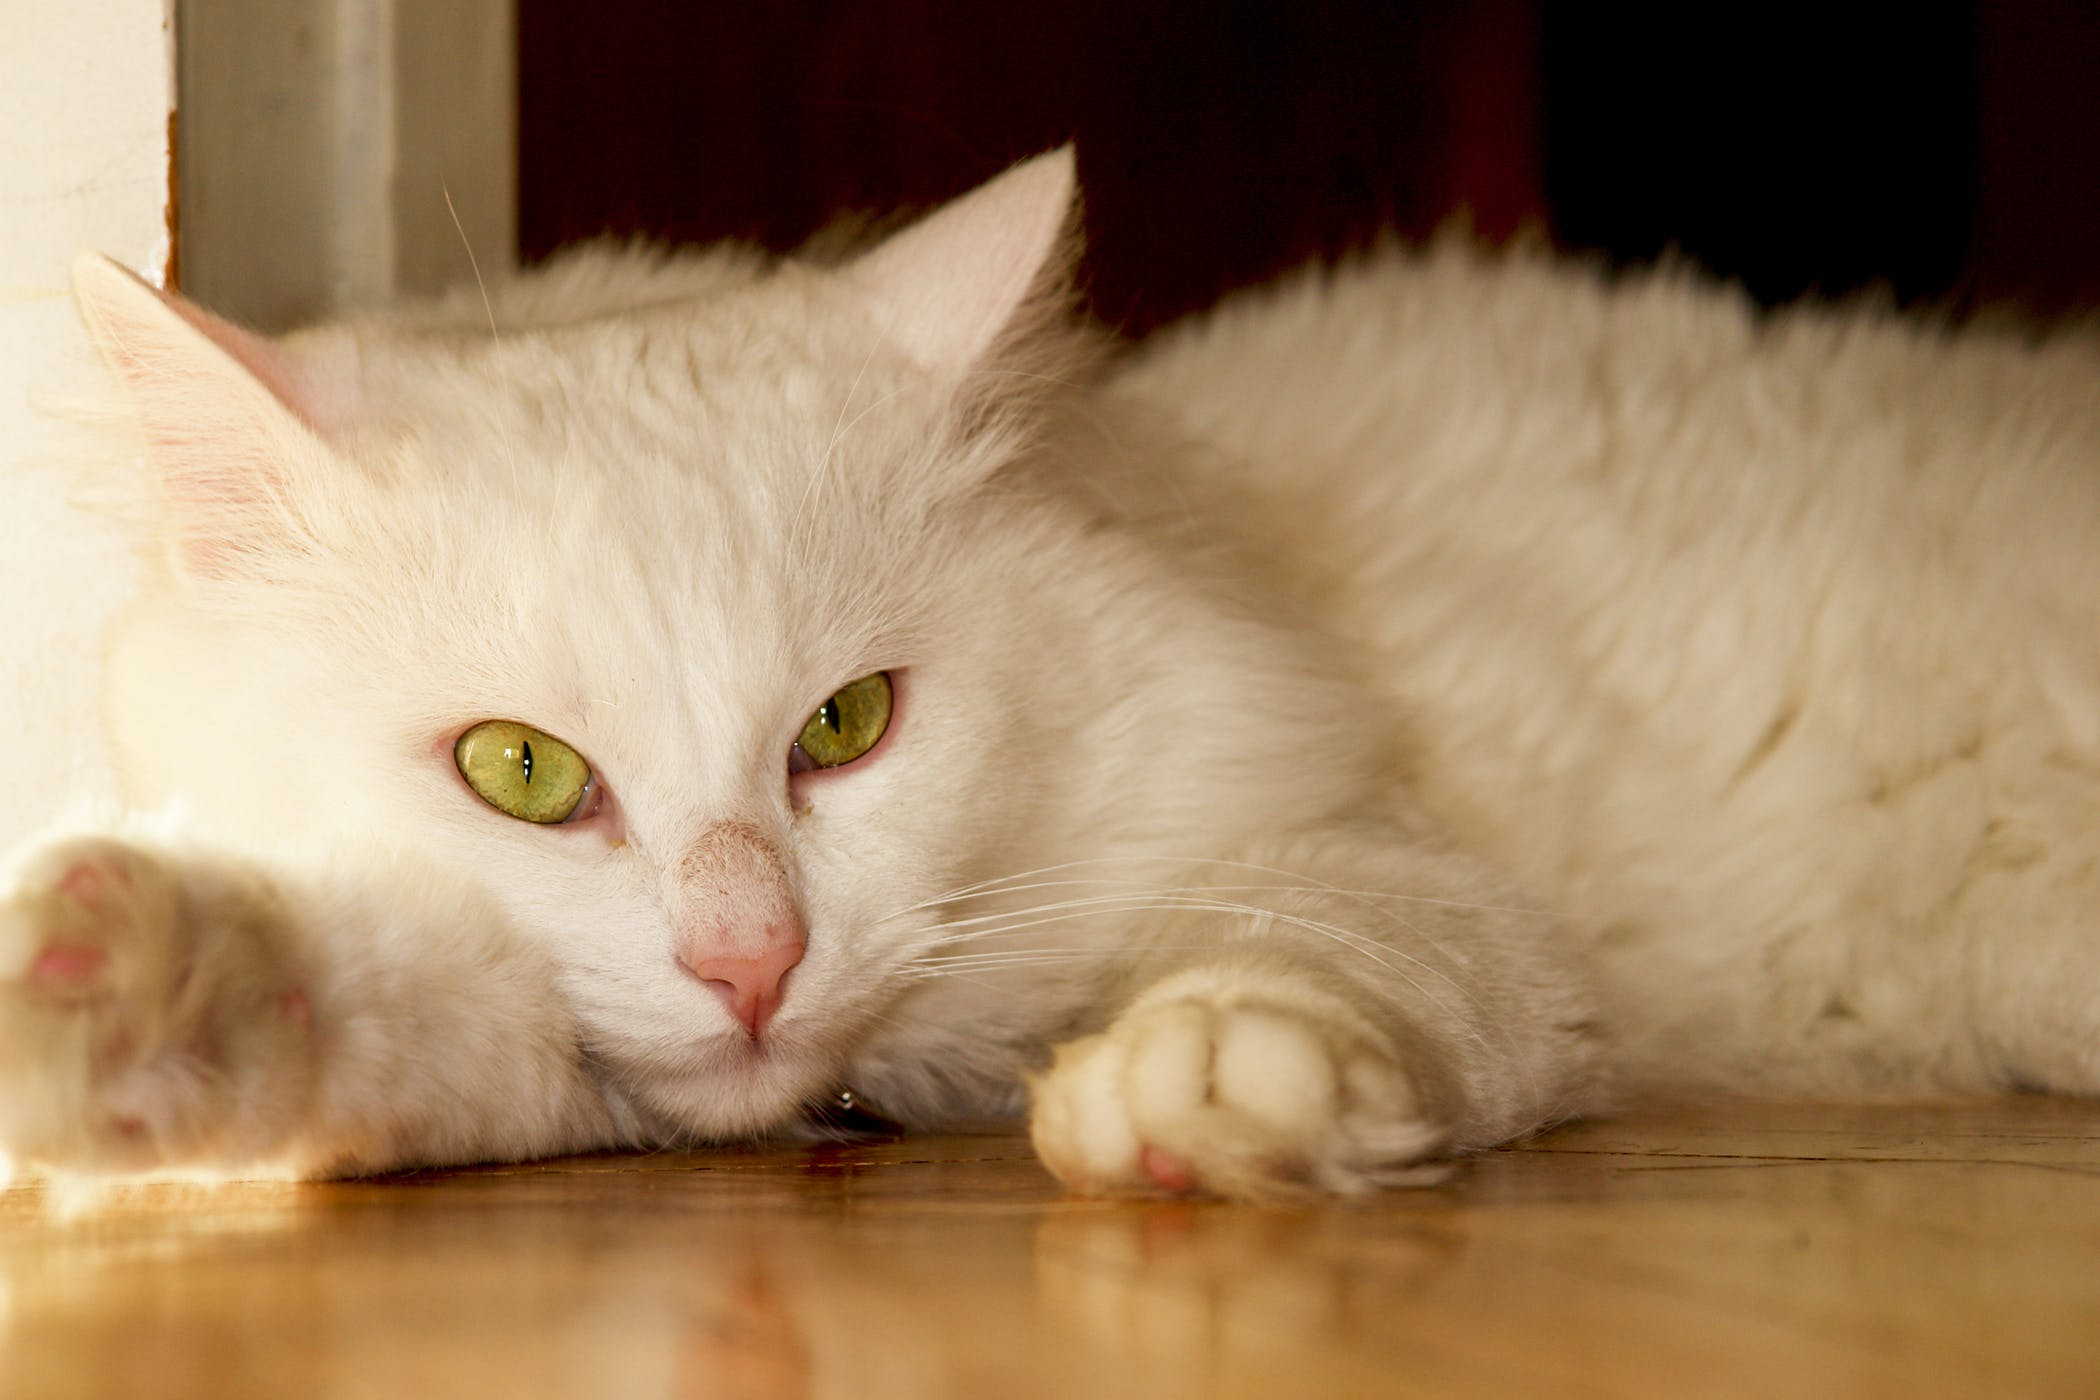 Surgical Fracture Repair in Cats - Procedure, Efficacy, Recovery